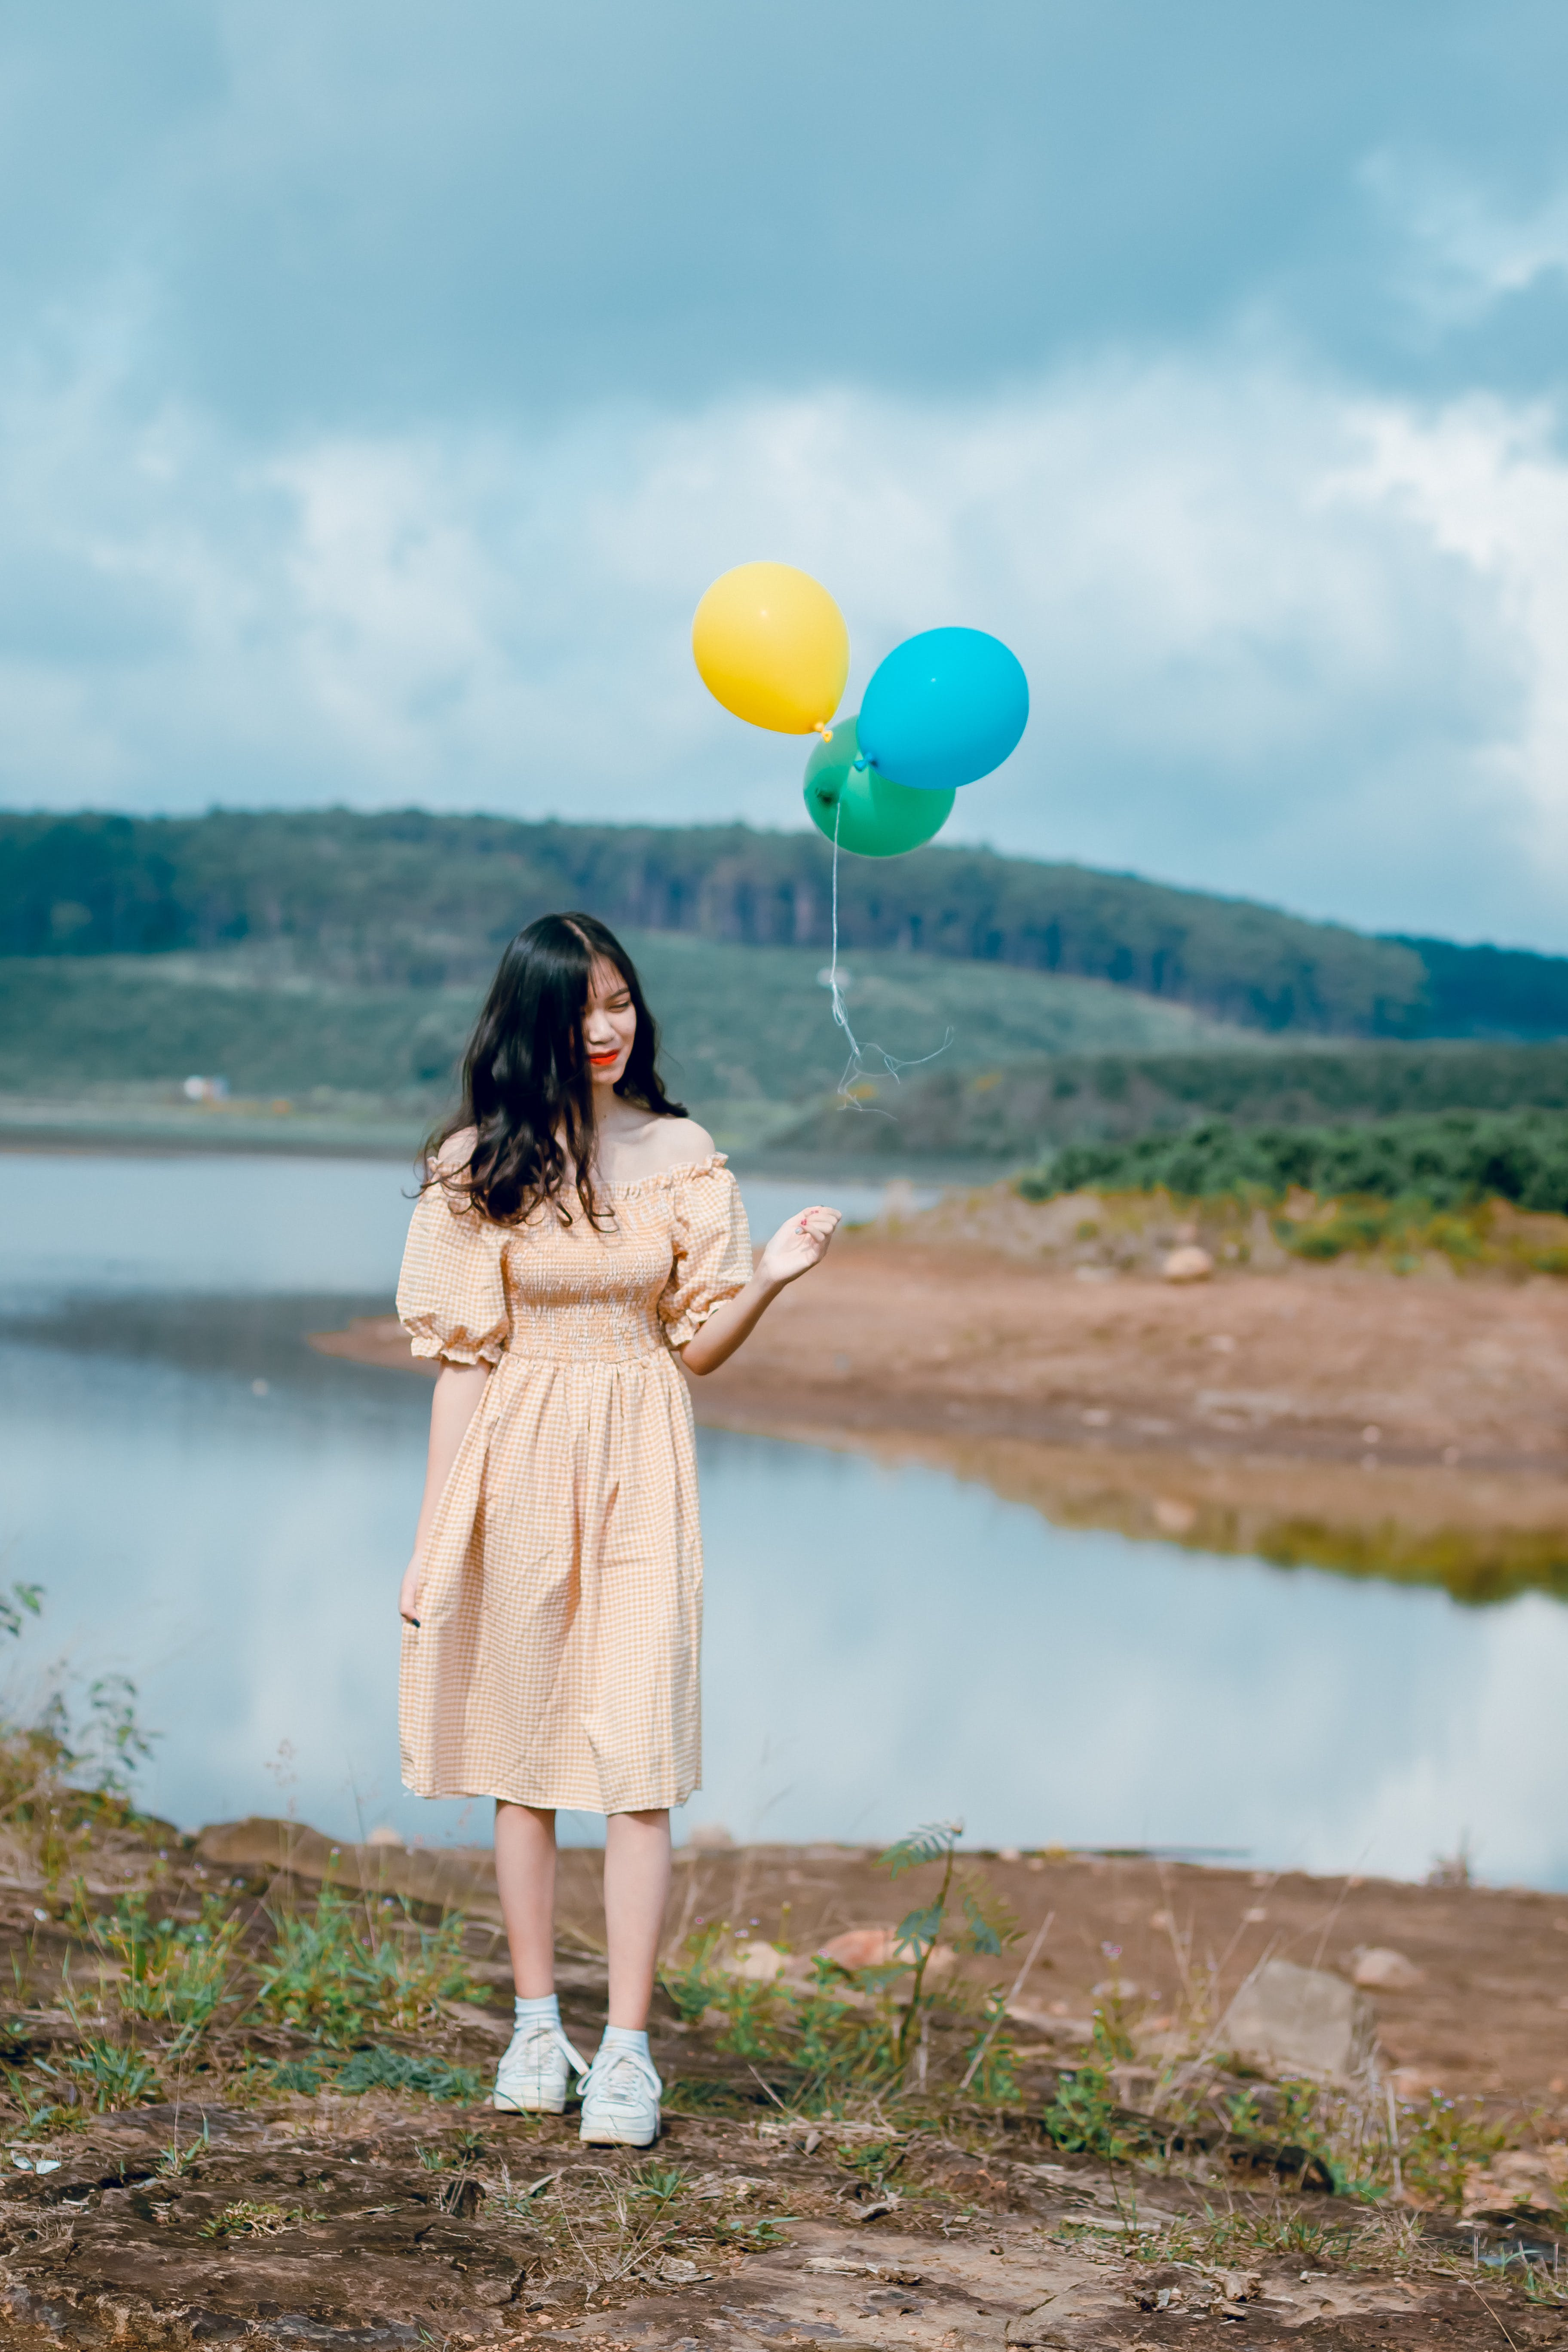 Woman in Beige Off-shoulder Dress Holding Balloons